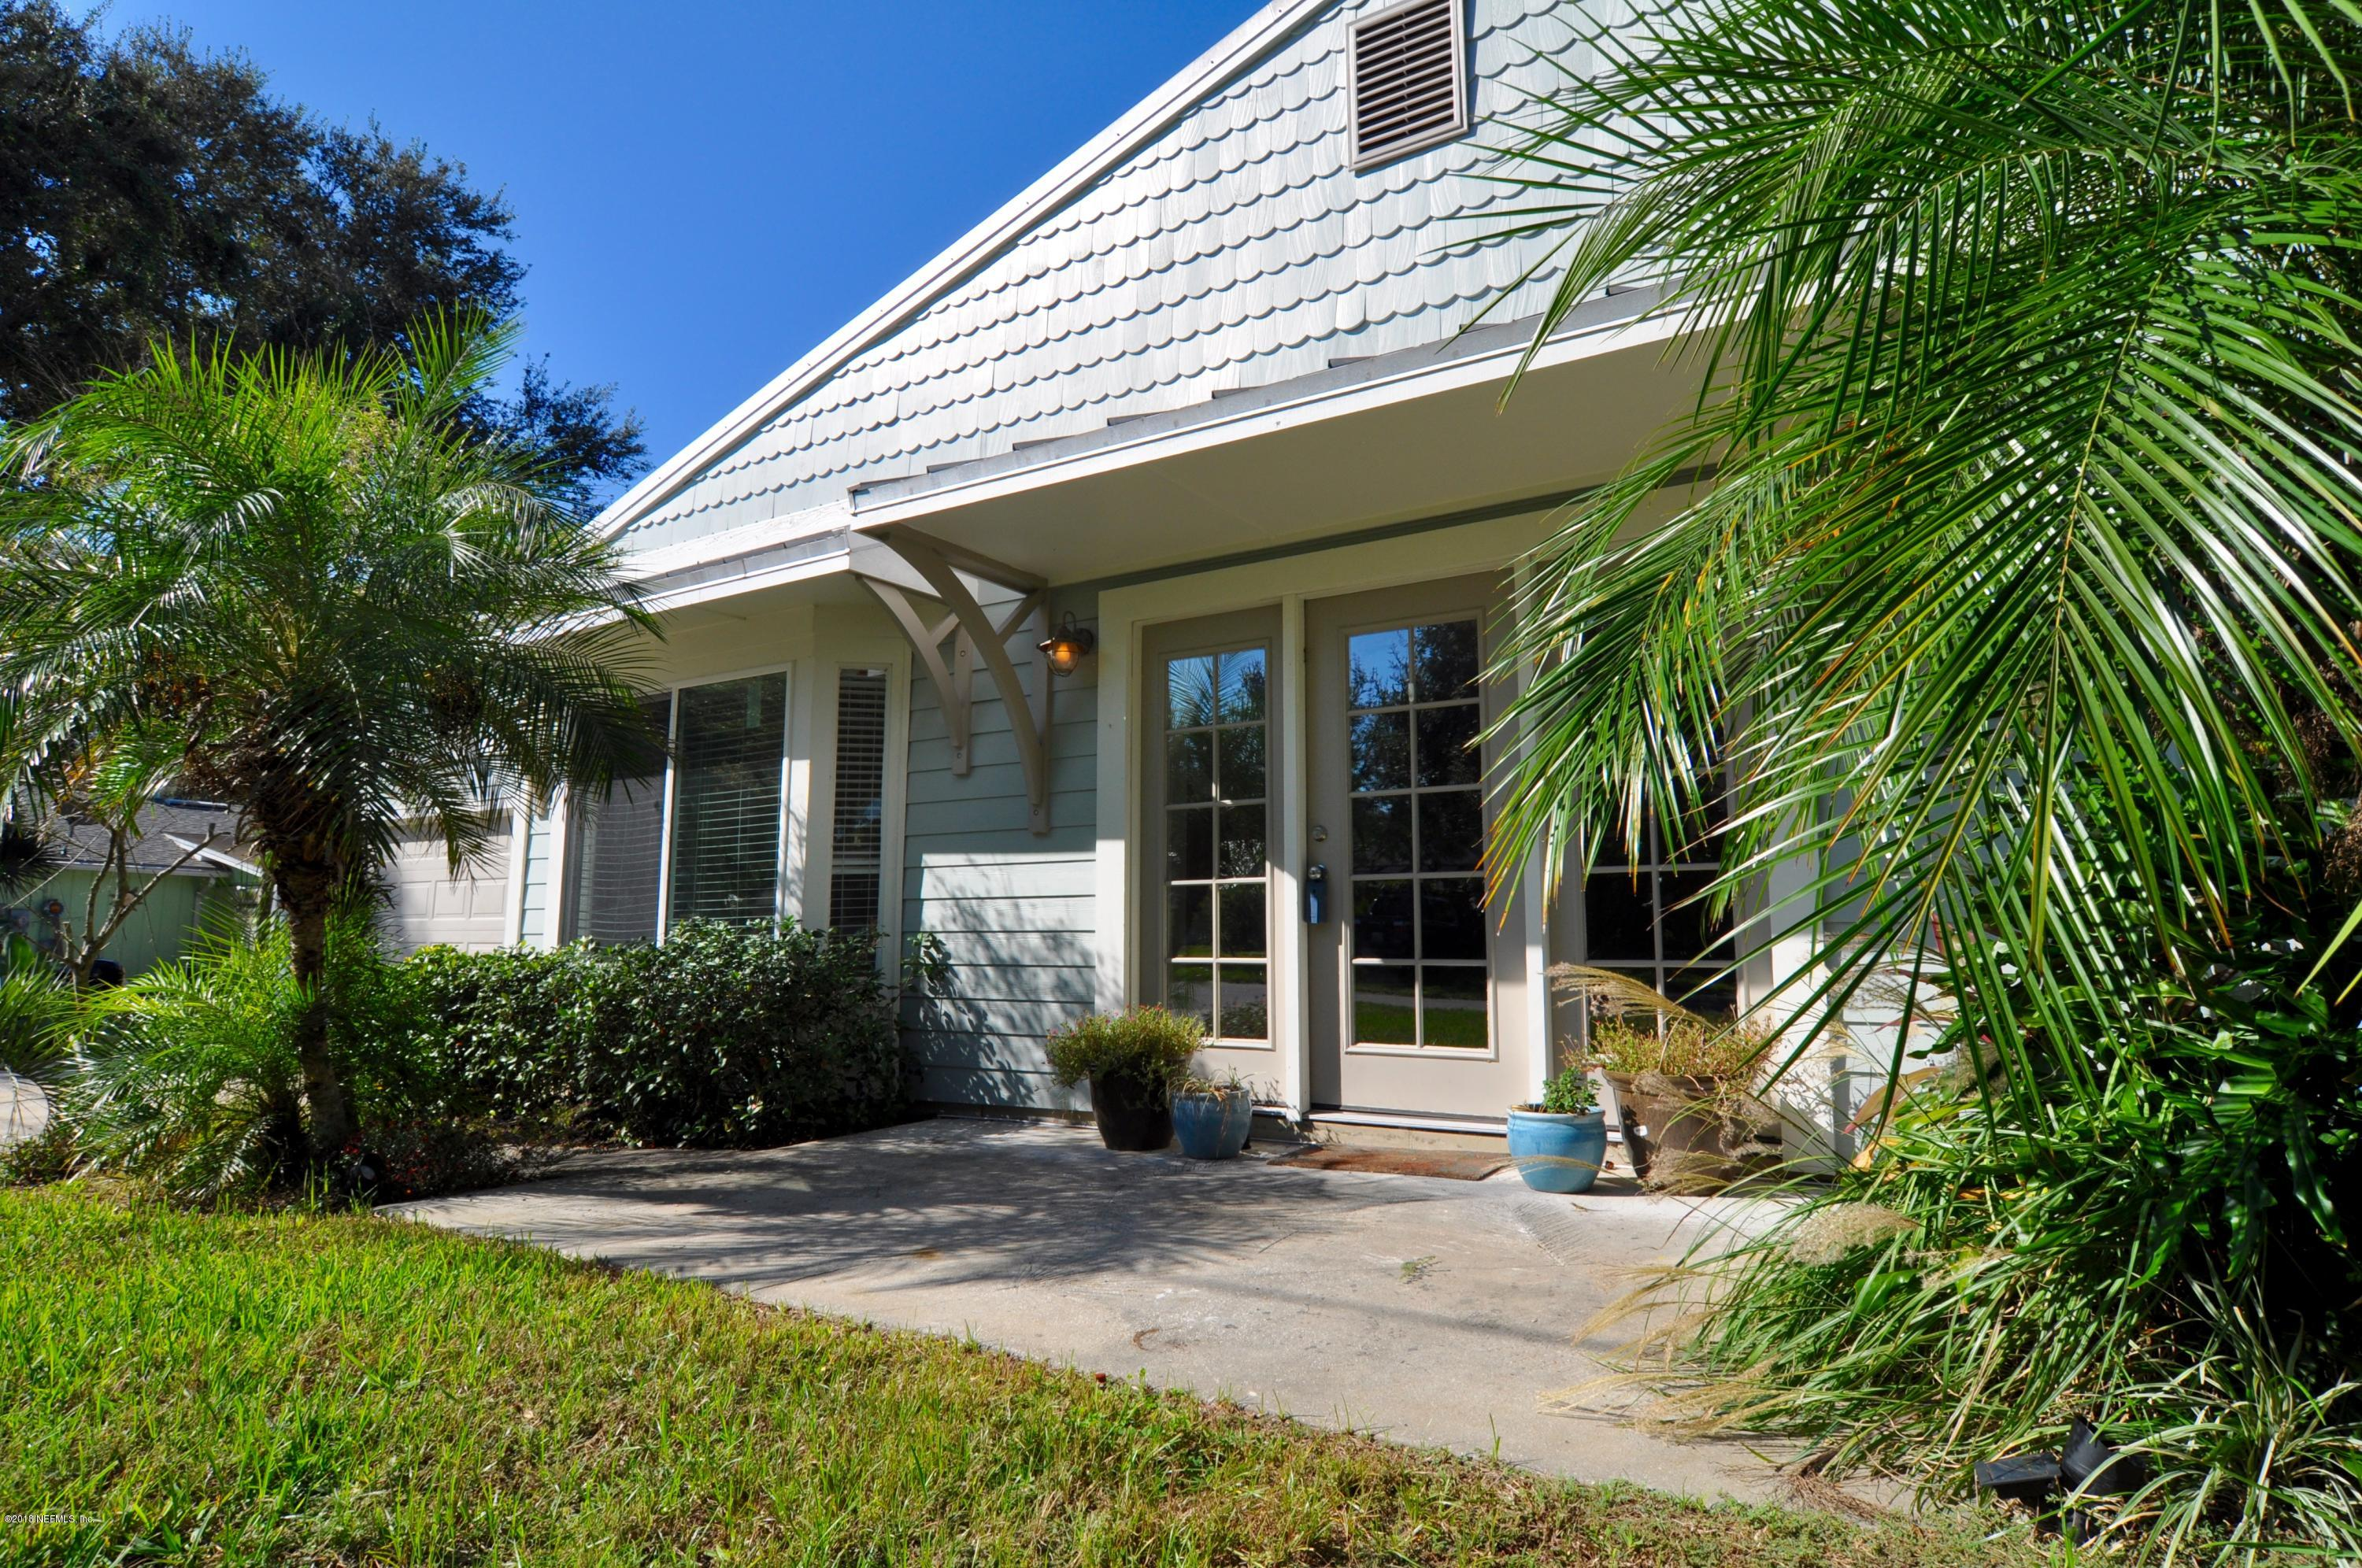 401 E, ST AUGUSTINE, FLORIDA 32080, 3 Bedrooms Bedrooms, ,2 BathroomsBathrooms,Residential - single family,For sale,E,954064